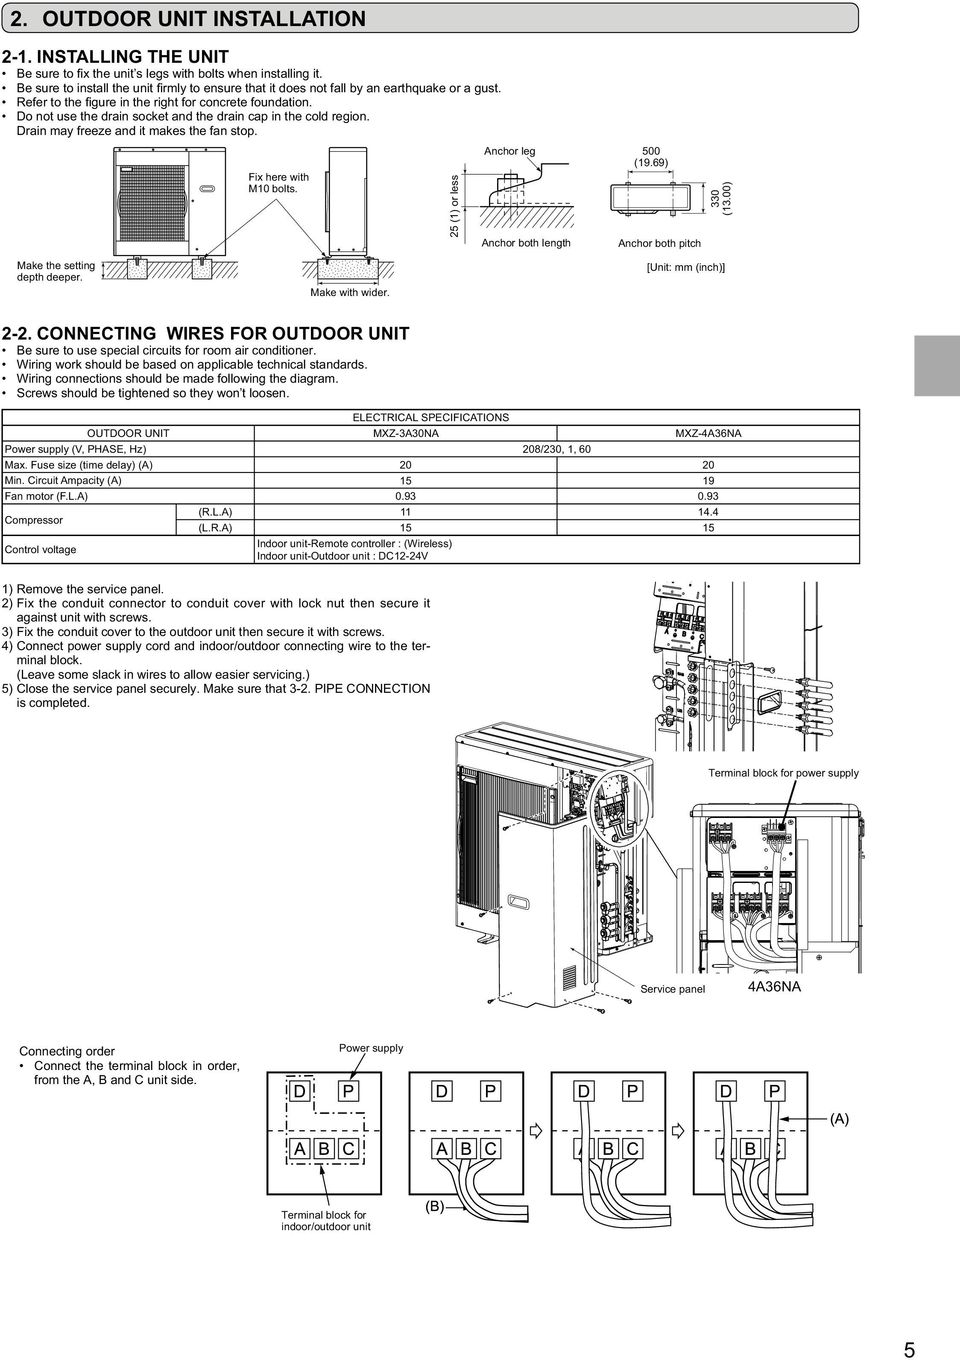 Split Type Air Conditioner Installation Manual Contents For Outdoor Ac Wiring Work Should Be Based On Applicable Technical Standards Connections Made Following